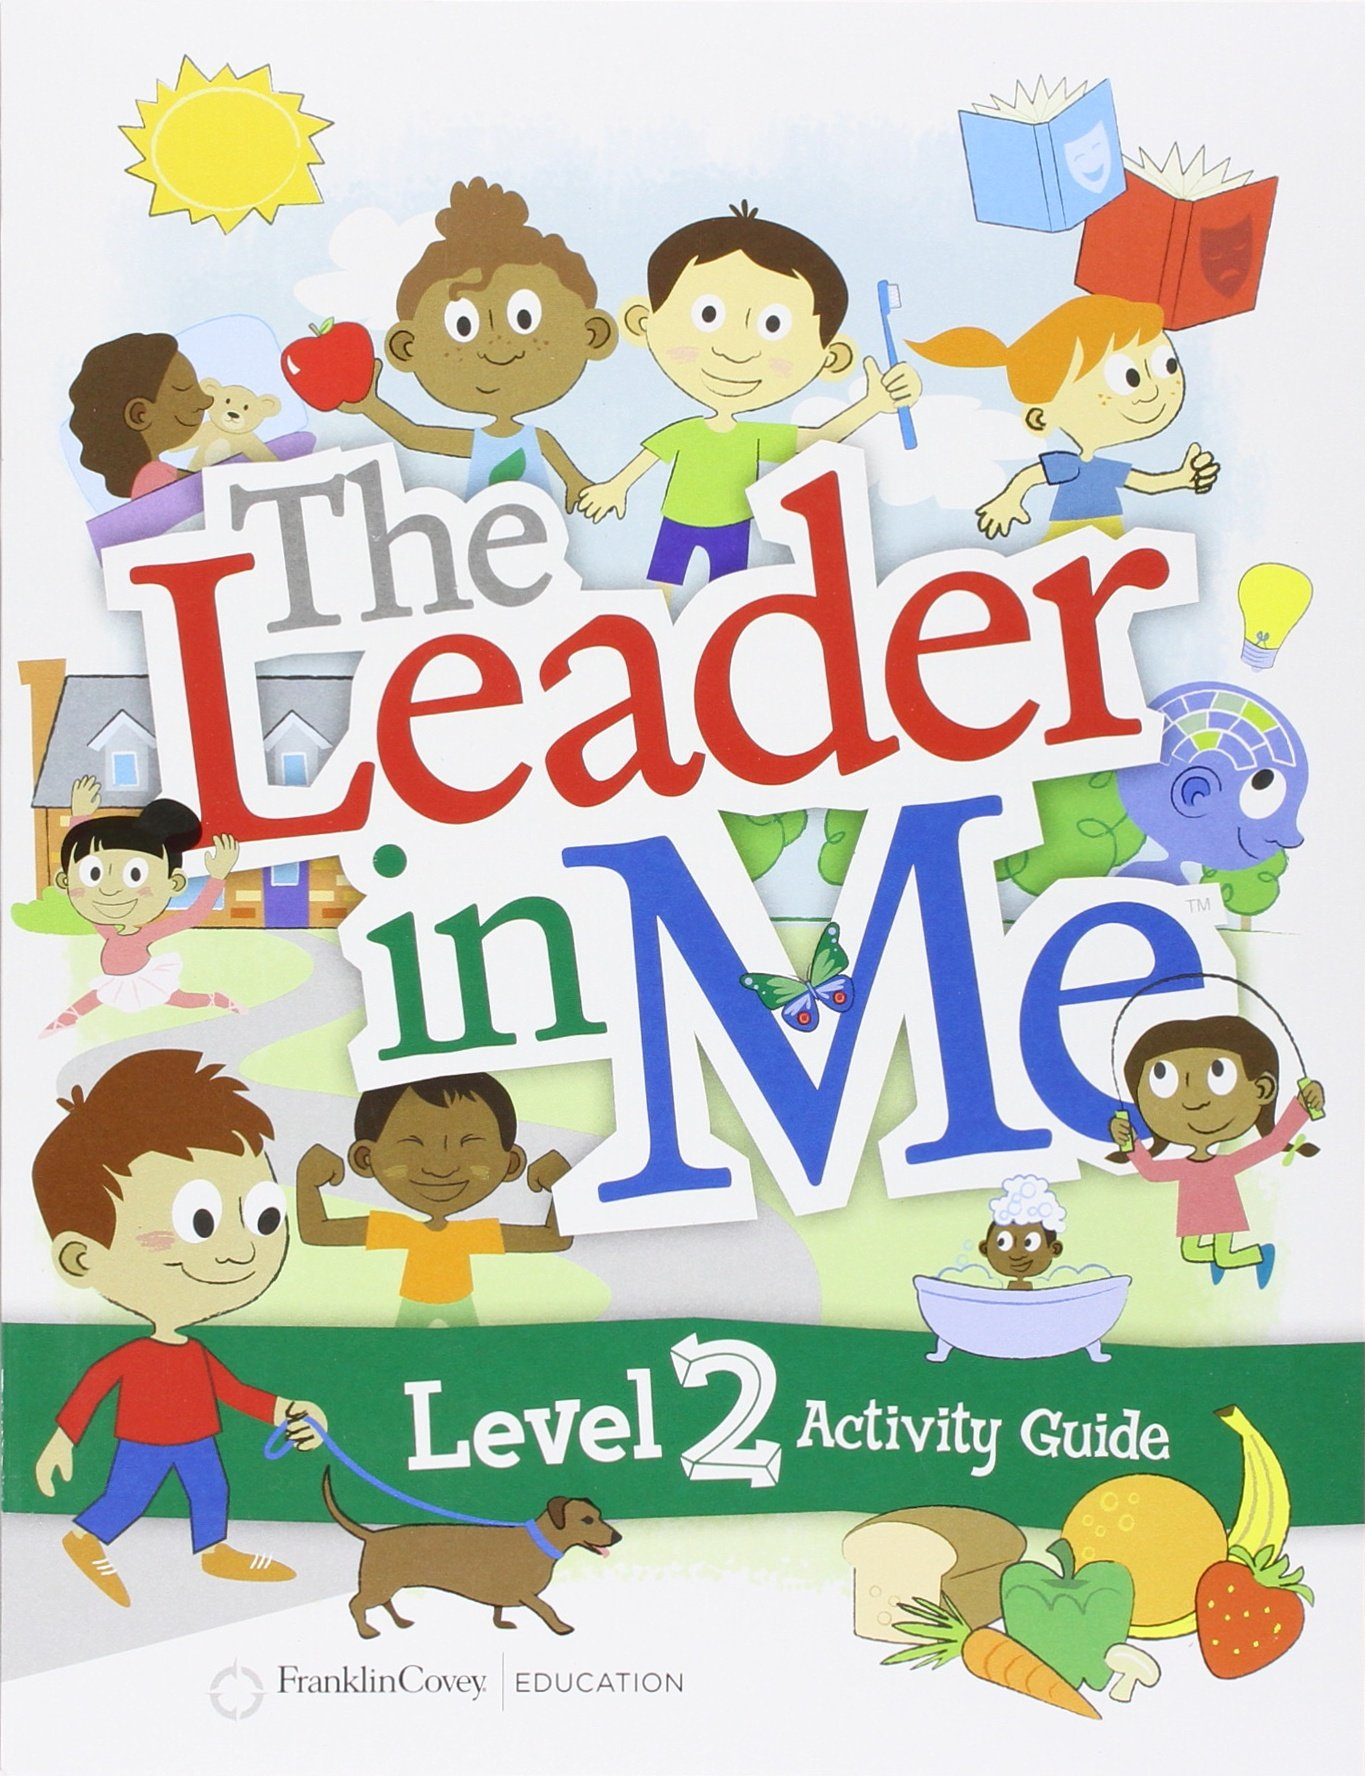 The Leader In Me Activity Guide Level 2 PDF